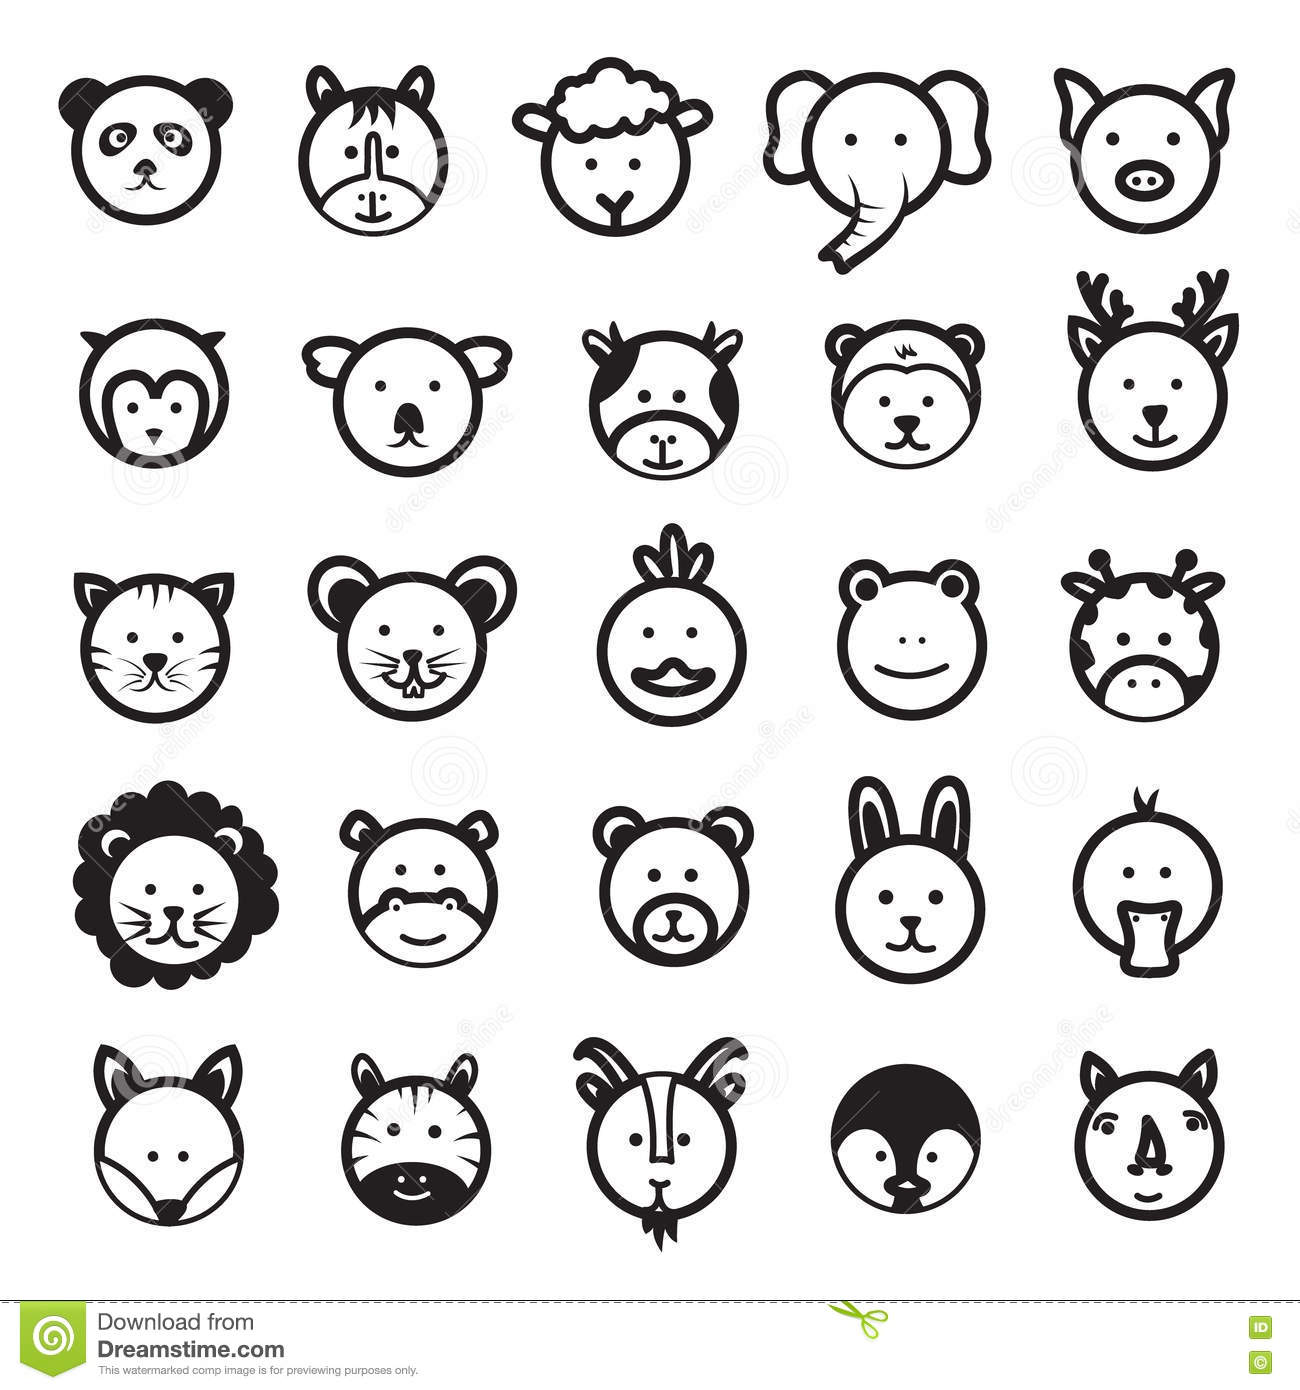 Face Mask Stencil further Clipart AiqeyM67T as well Stock Illustration Cute Animal Faces Vector Set Cartoon Character Black White Image79030100 as well Coloring Pages Of Realistic Dogs likewise 362085 Using Bipolar Way Hide Truth Anyone Else. on s faces cartoon monkey